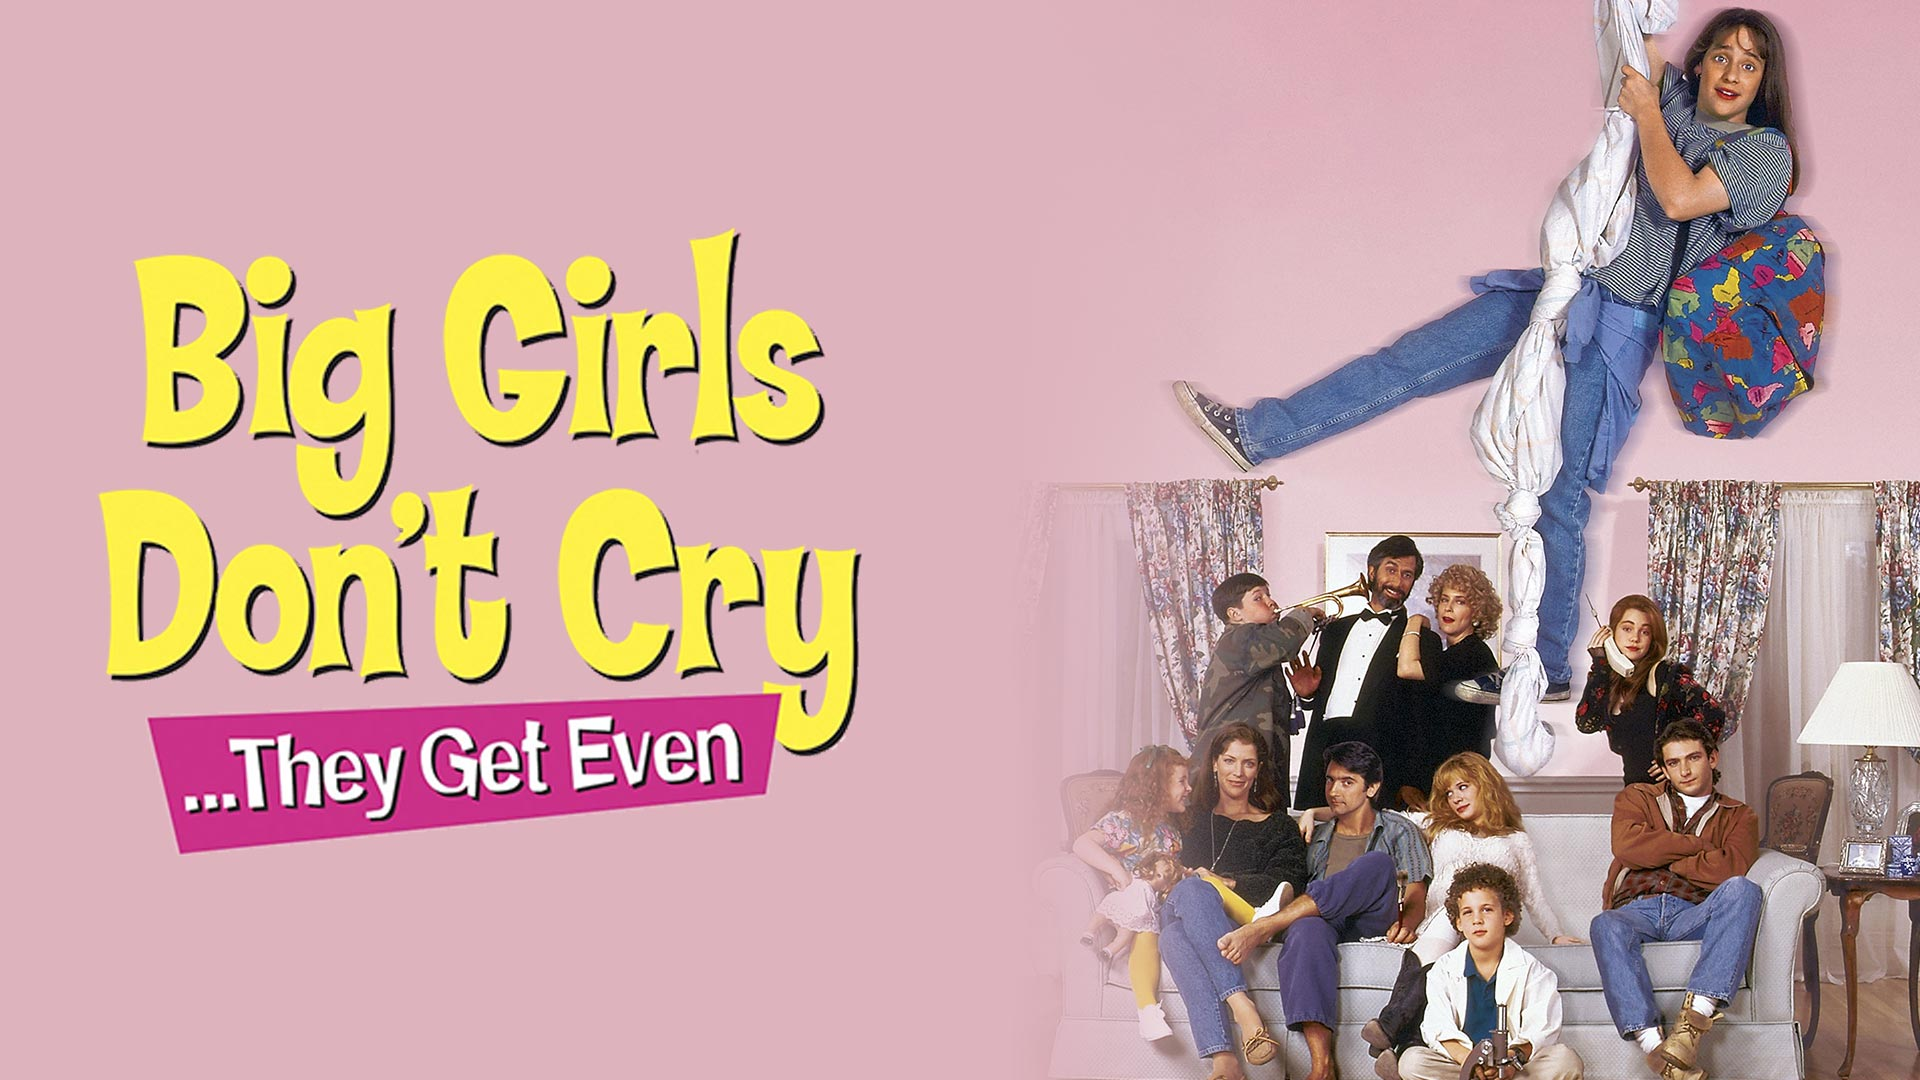 Big Girls Don't Cry...They Get Even